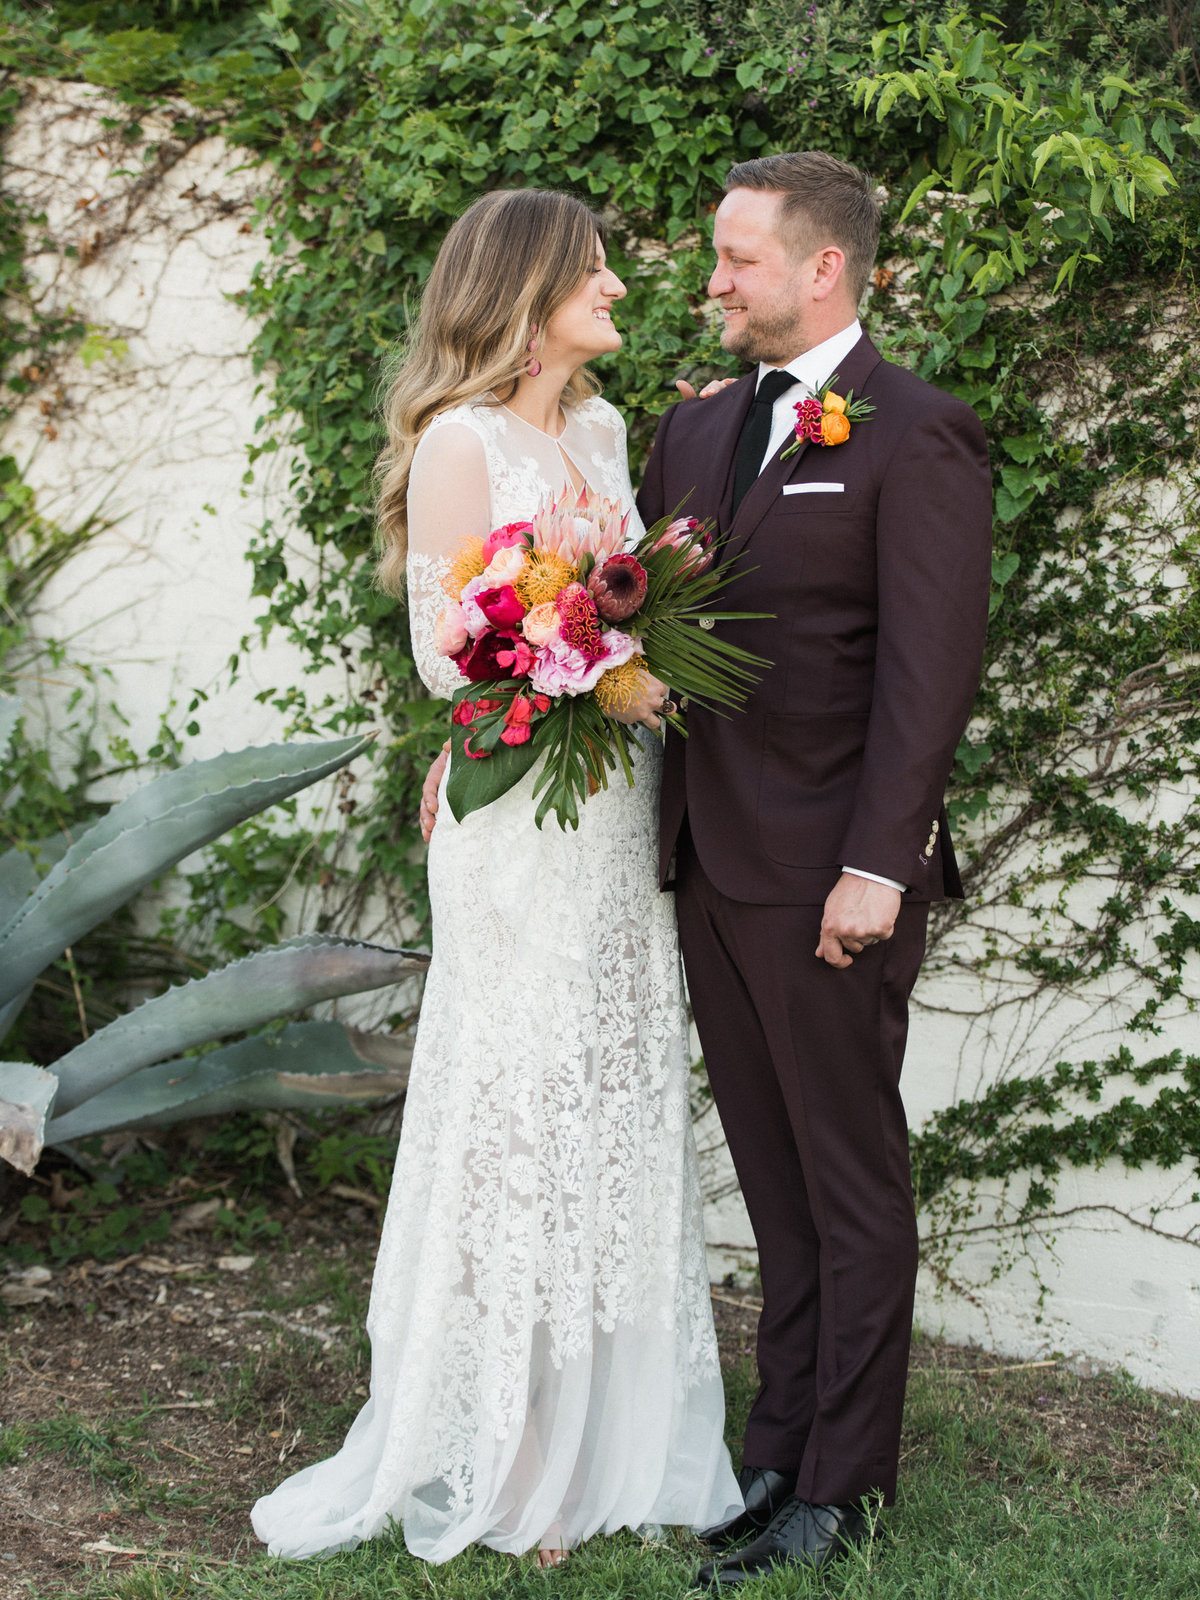 Courtney Hanson Photography - Vintage Tropical Wedding at The Belmont Hotel in Dallas-0607